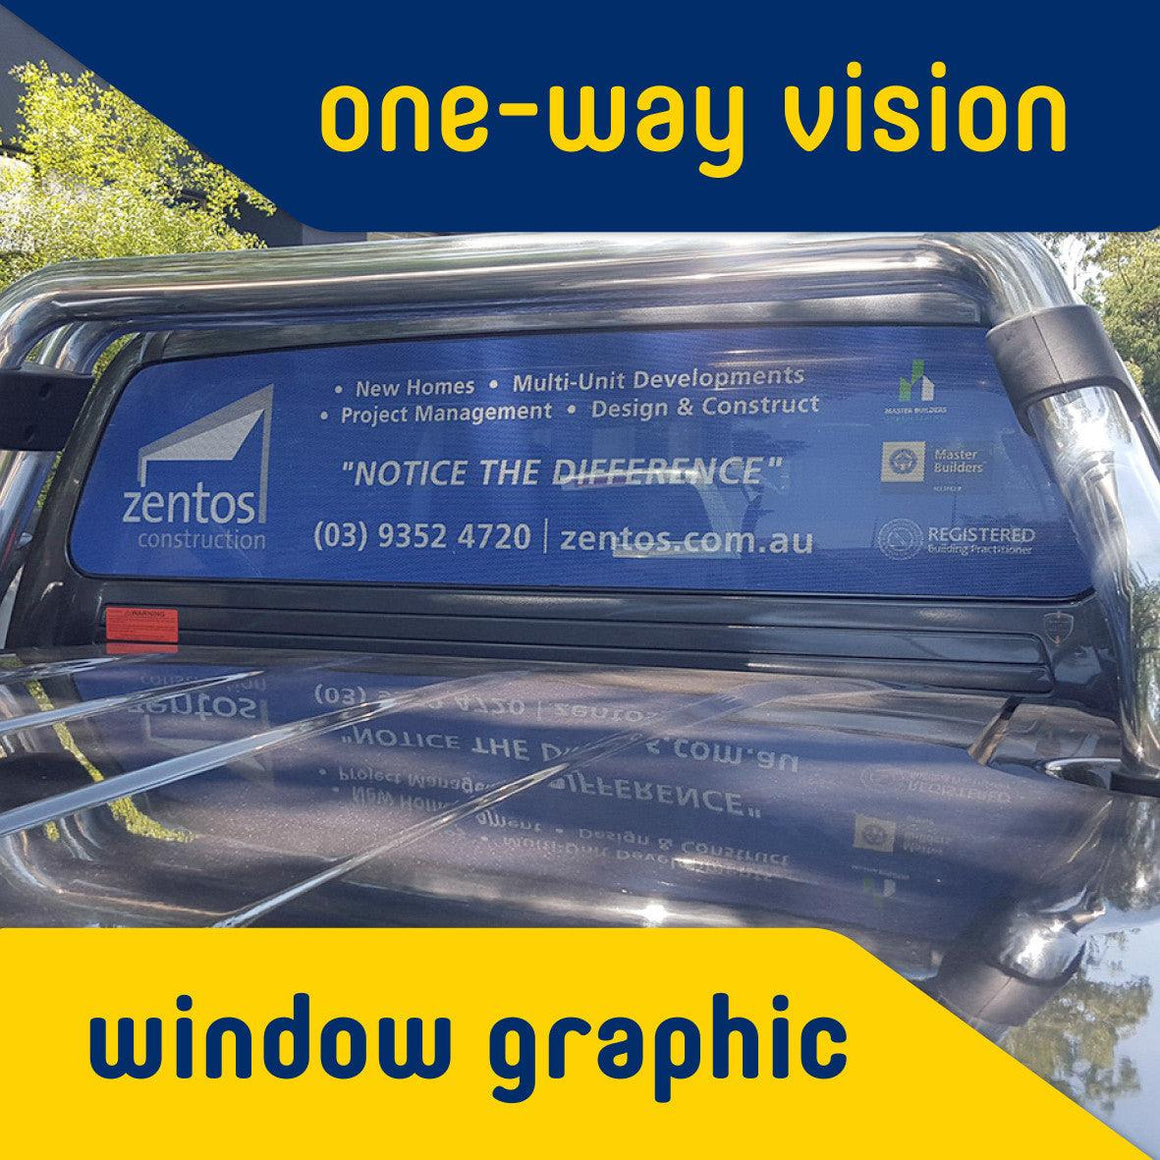 One-Way Vision Window Graphic